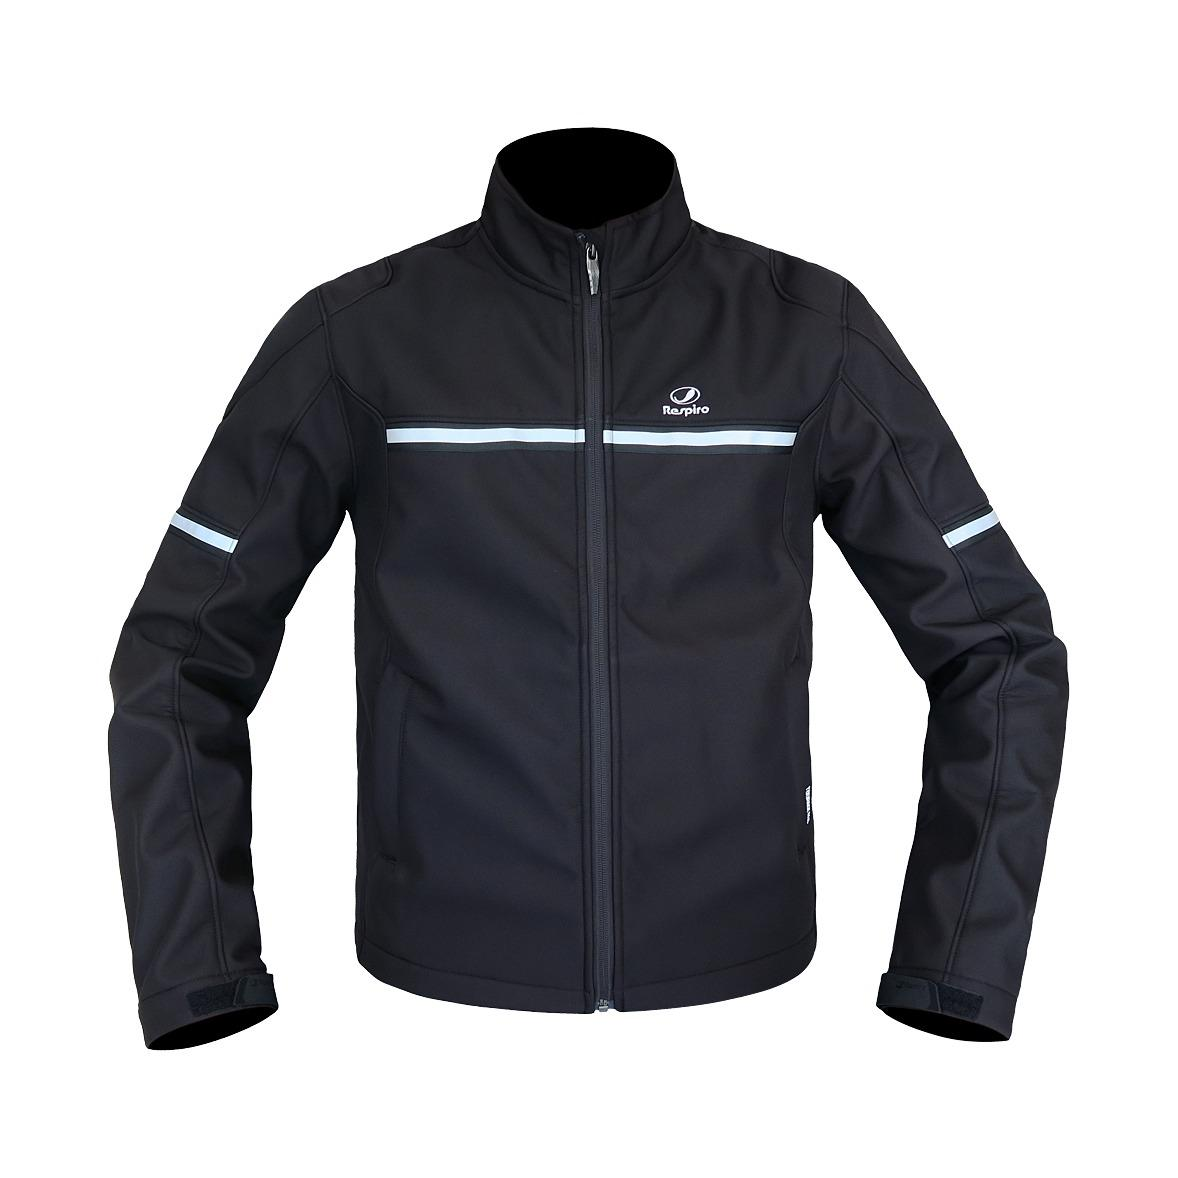 Respiro Tourage R1 Jaket Motor/Outdoor - Hitam